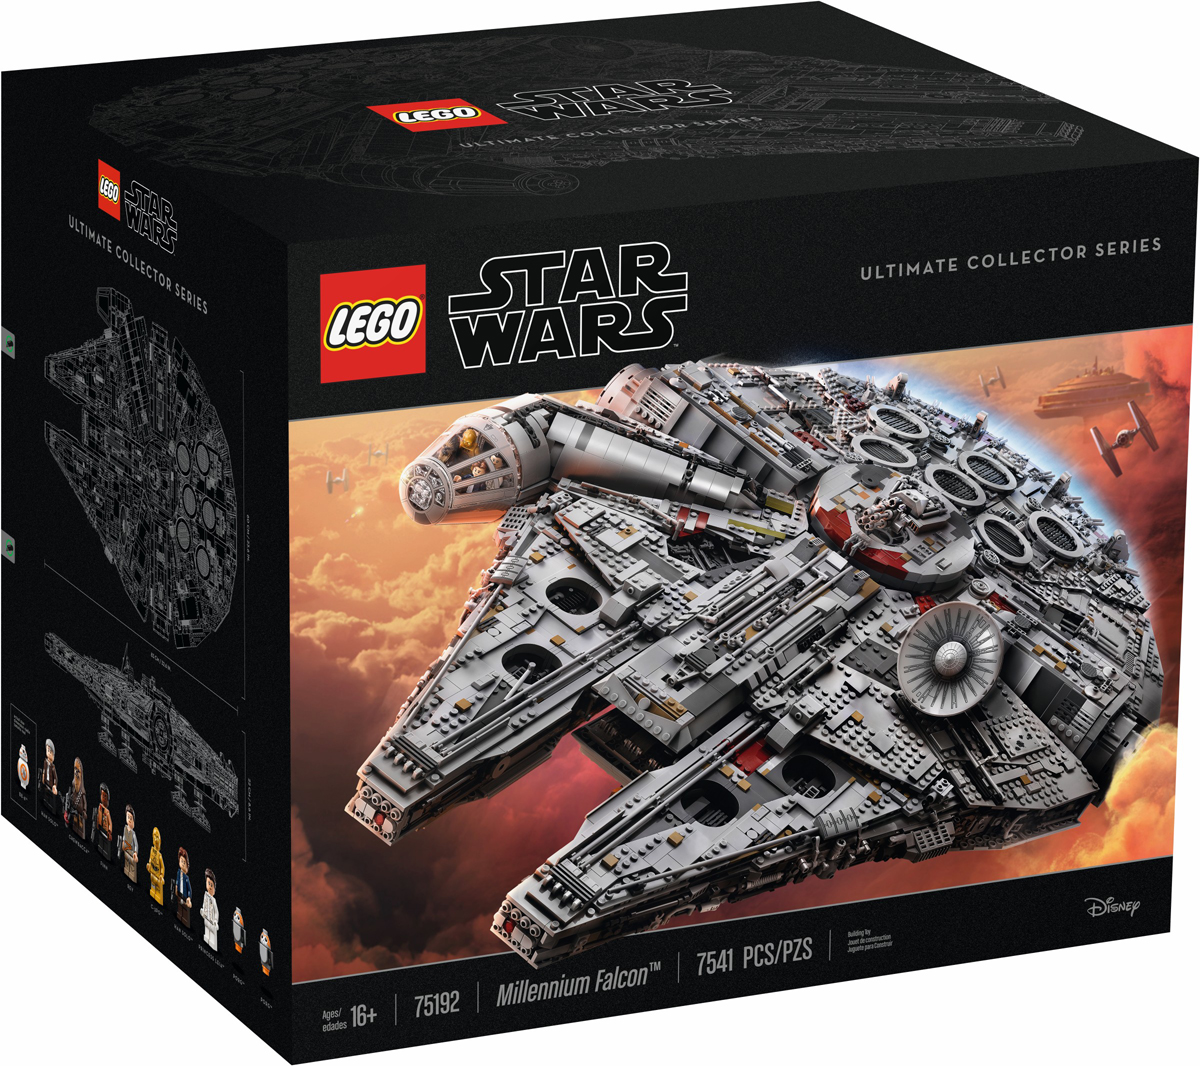 LEGO Star Wars UCS Millennium Falcon (75192) Official Reveal